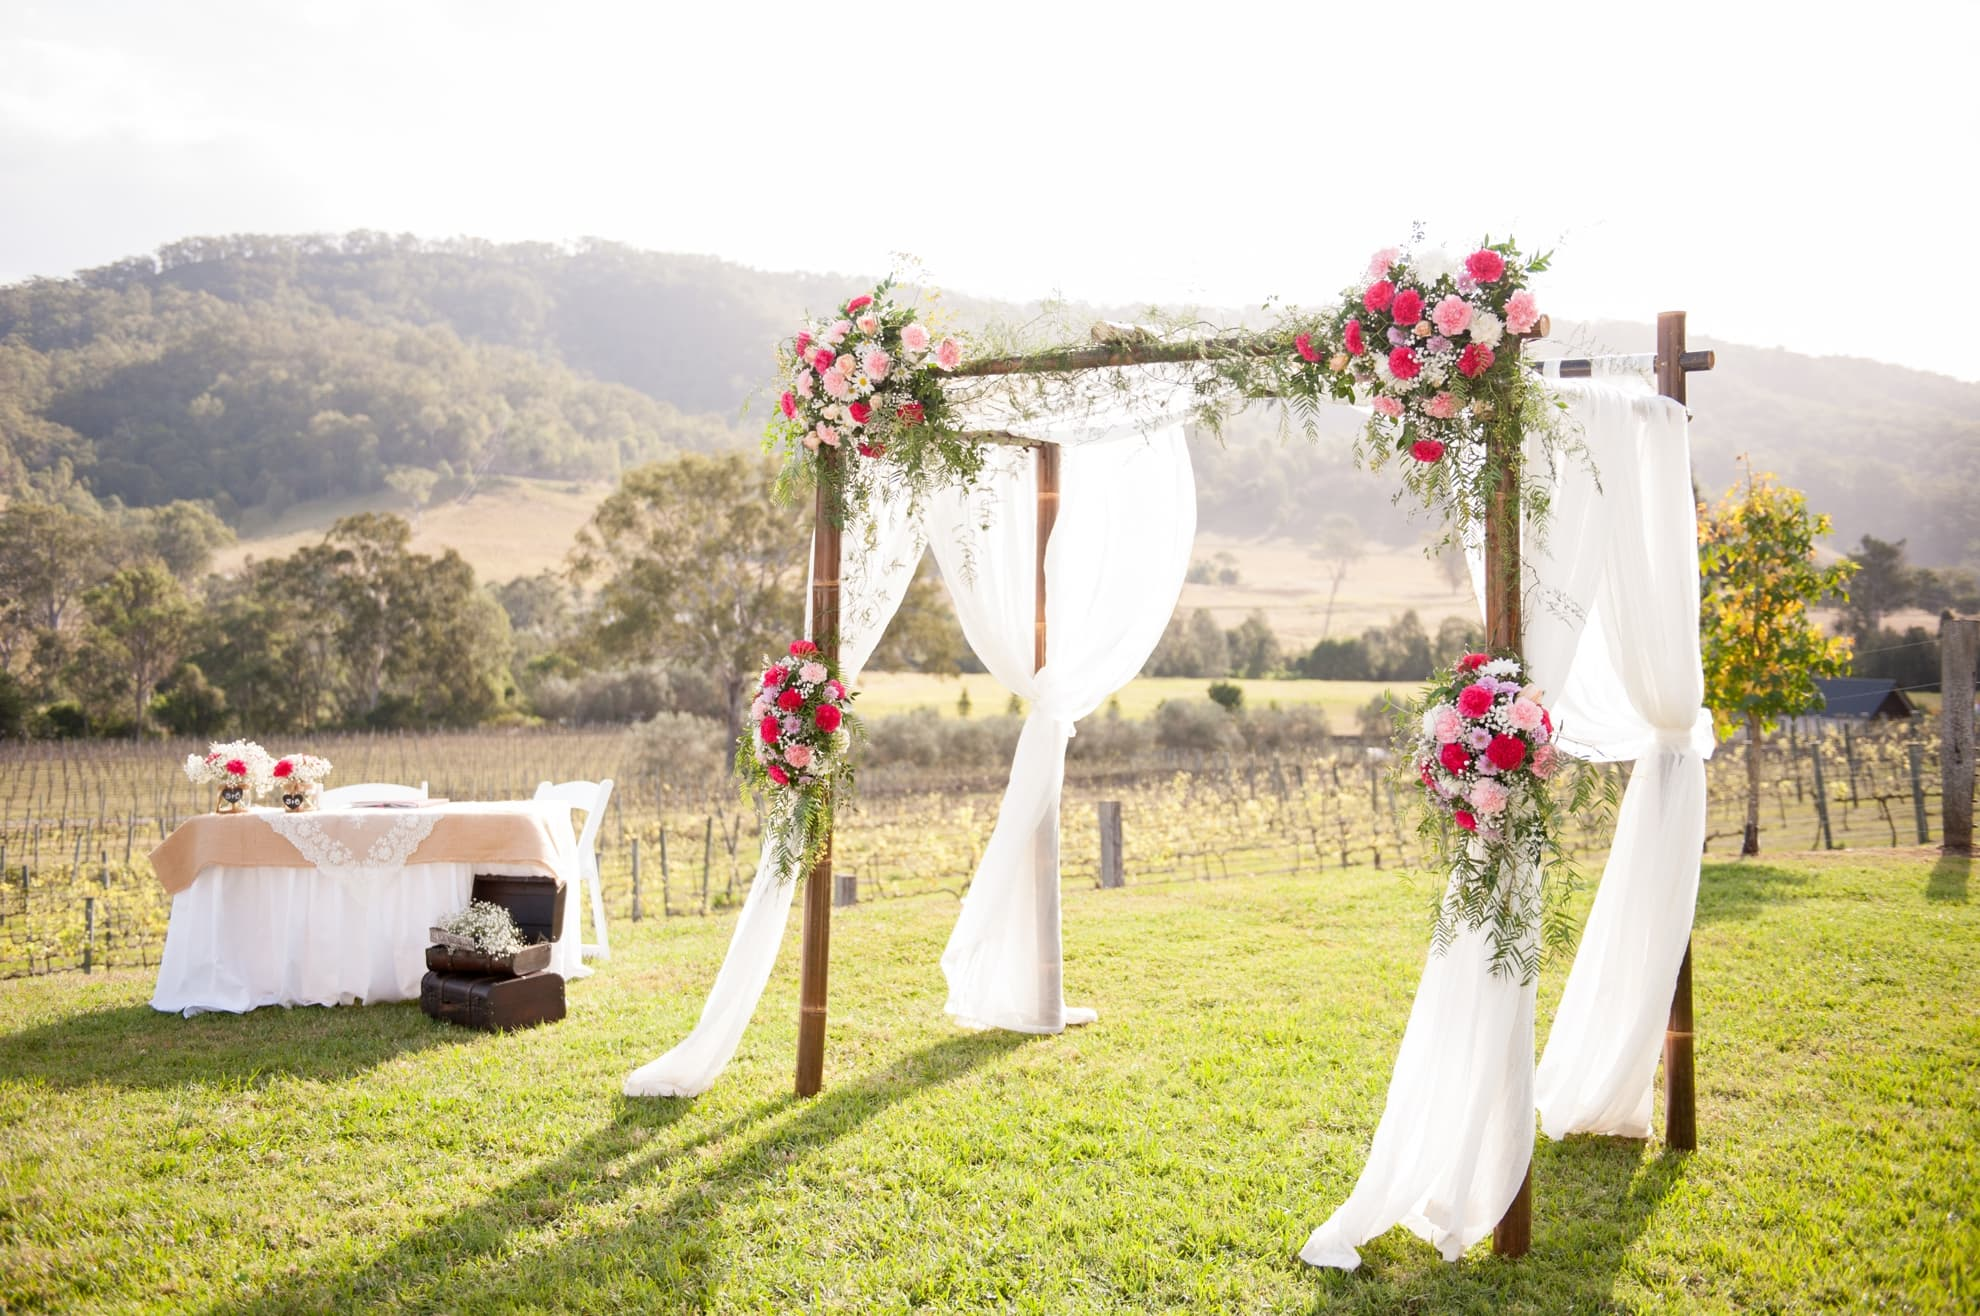 stunning-wedding-arbor-draping-flowing-in-the-wind-with-moutains-in-the-backdrop